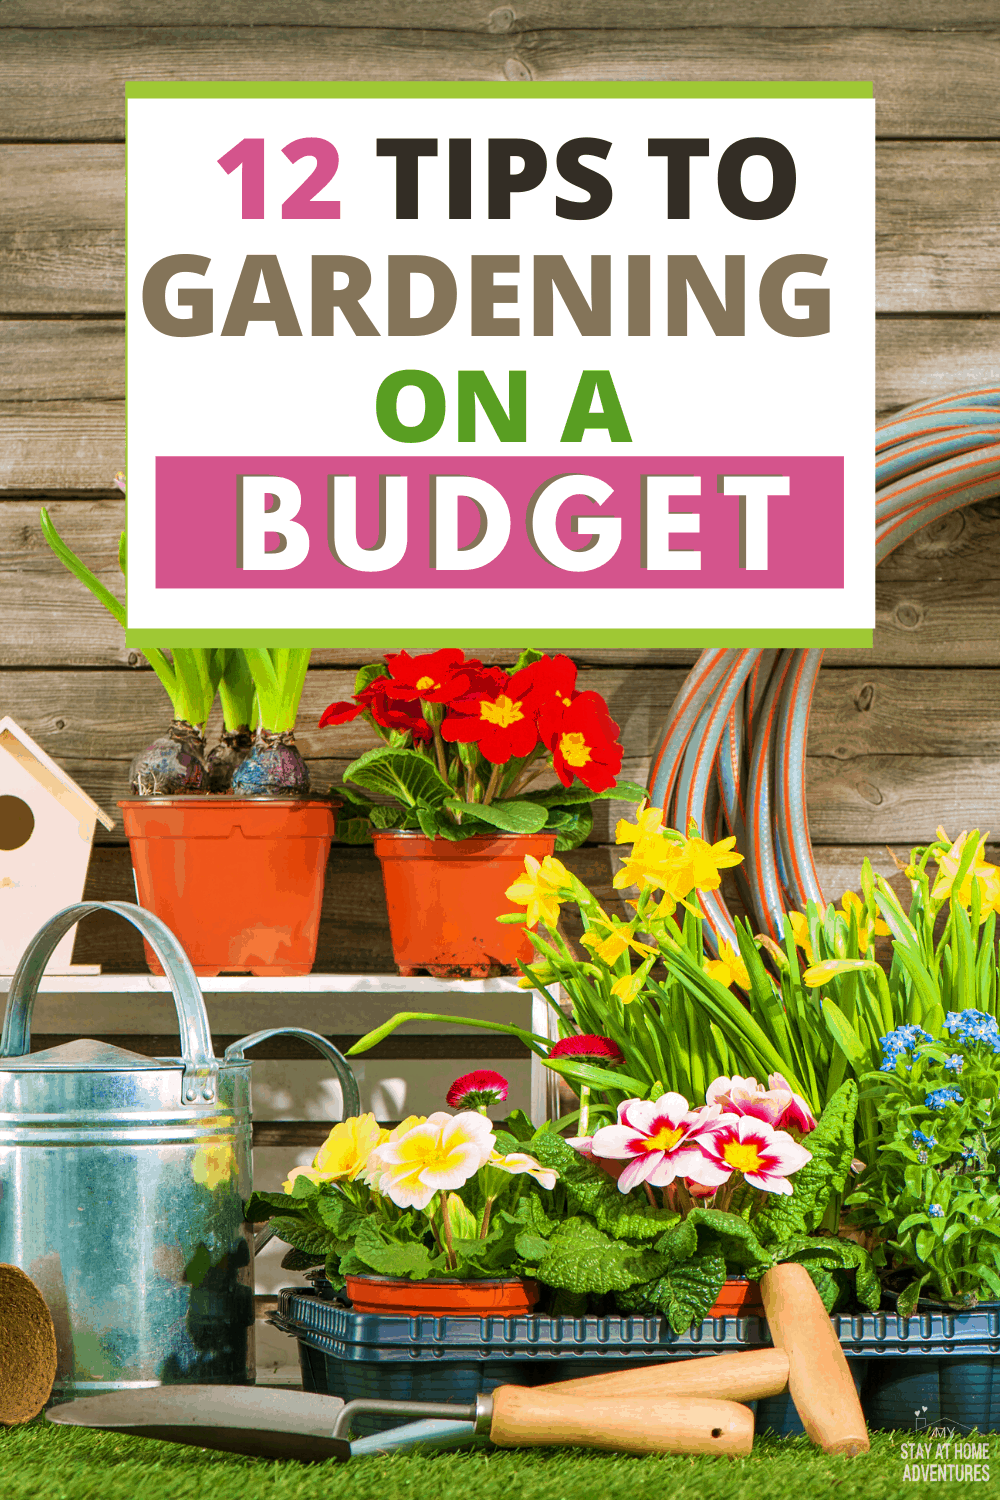 Learn how you can start gardening on a budget with these twelve tips and start gardening and saving money starting today! #garden #gardeningtips  via @mystayathome